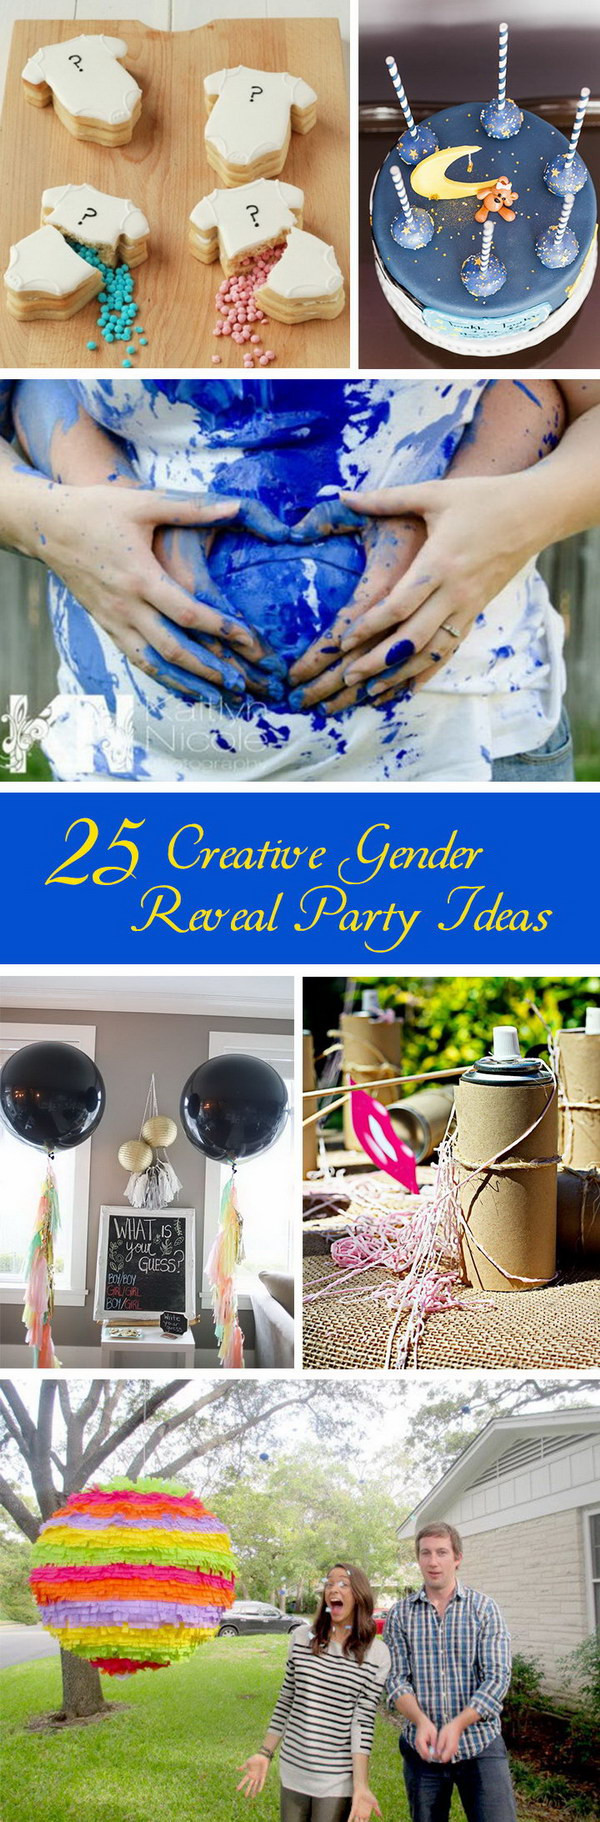 Different Ideas For A Gender Reveal Party  25 Creative Gender Reveal Party Ideas Hative